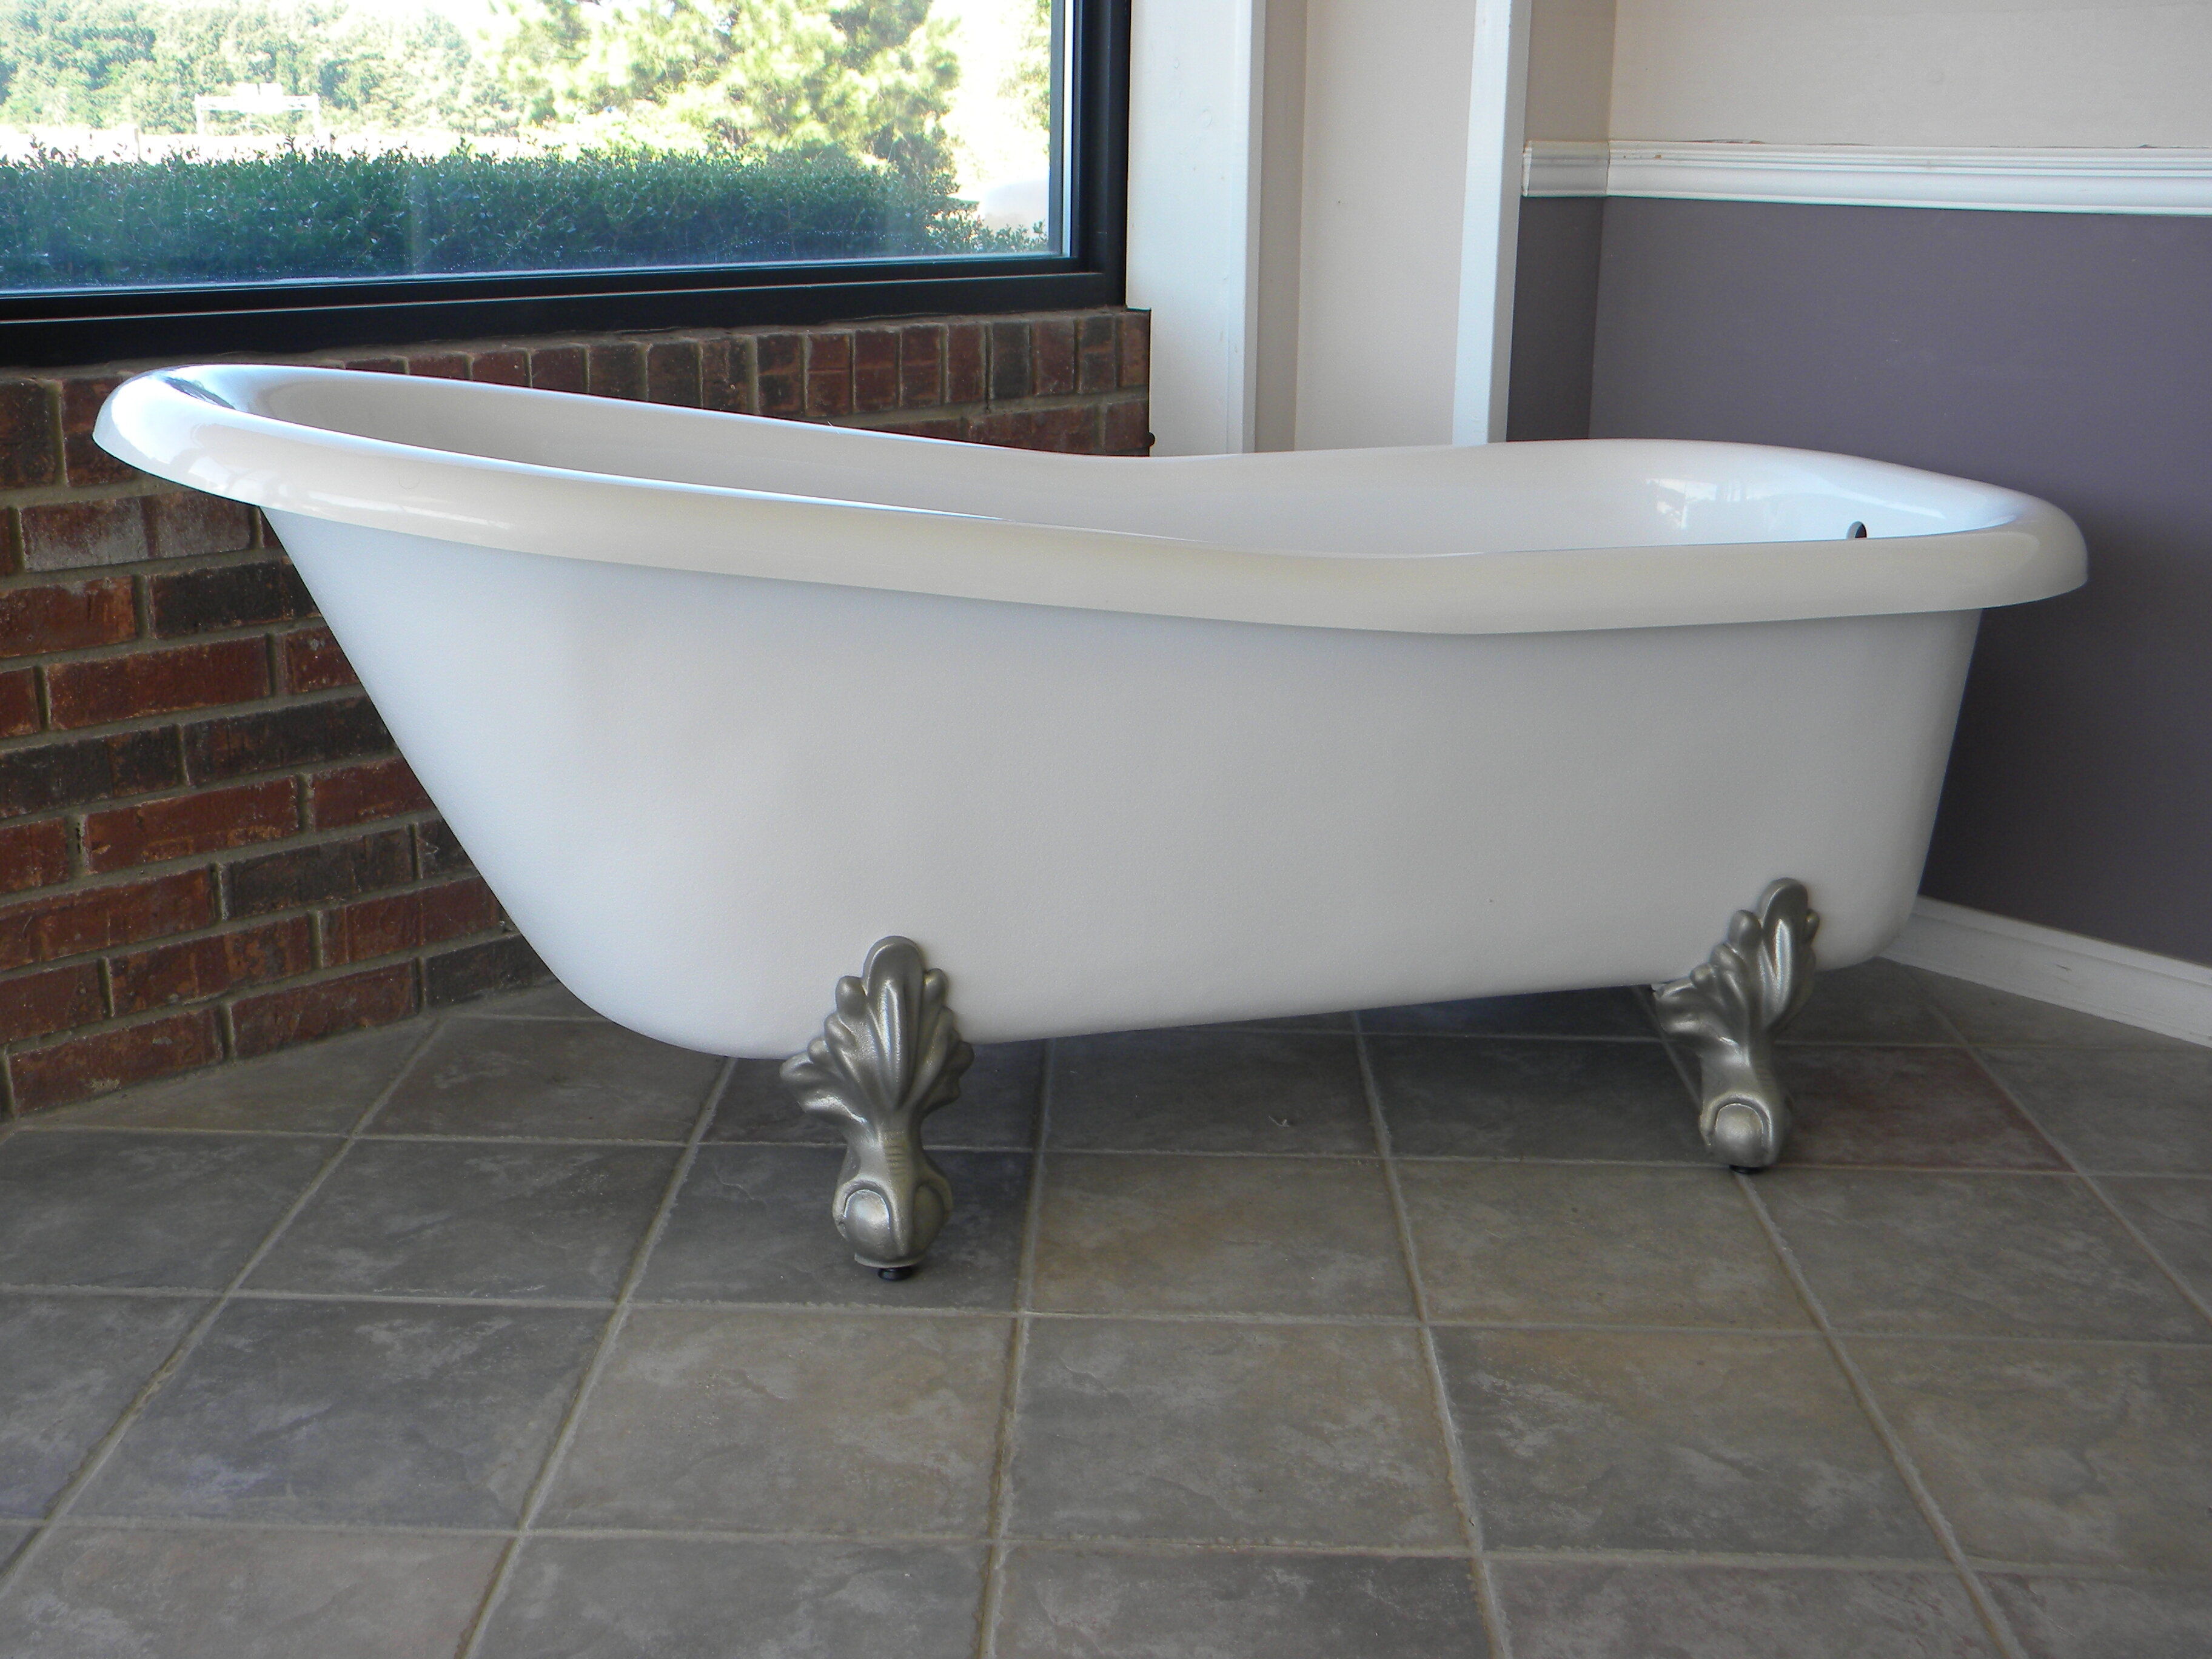 Dorable Bathtub 30 X 60 Picture Collection - Bathroom and Shower ...